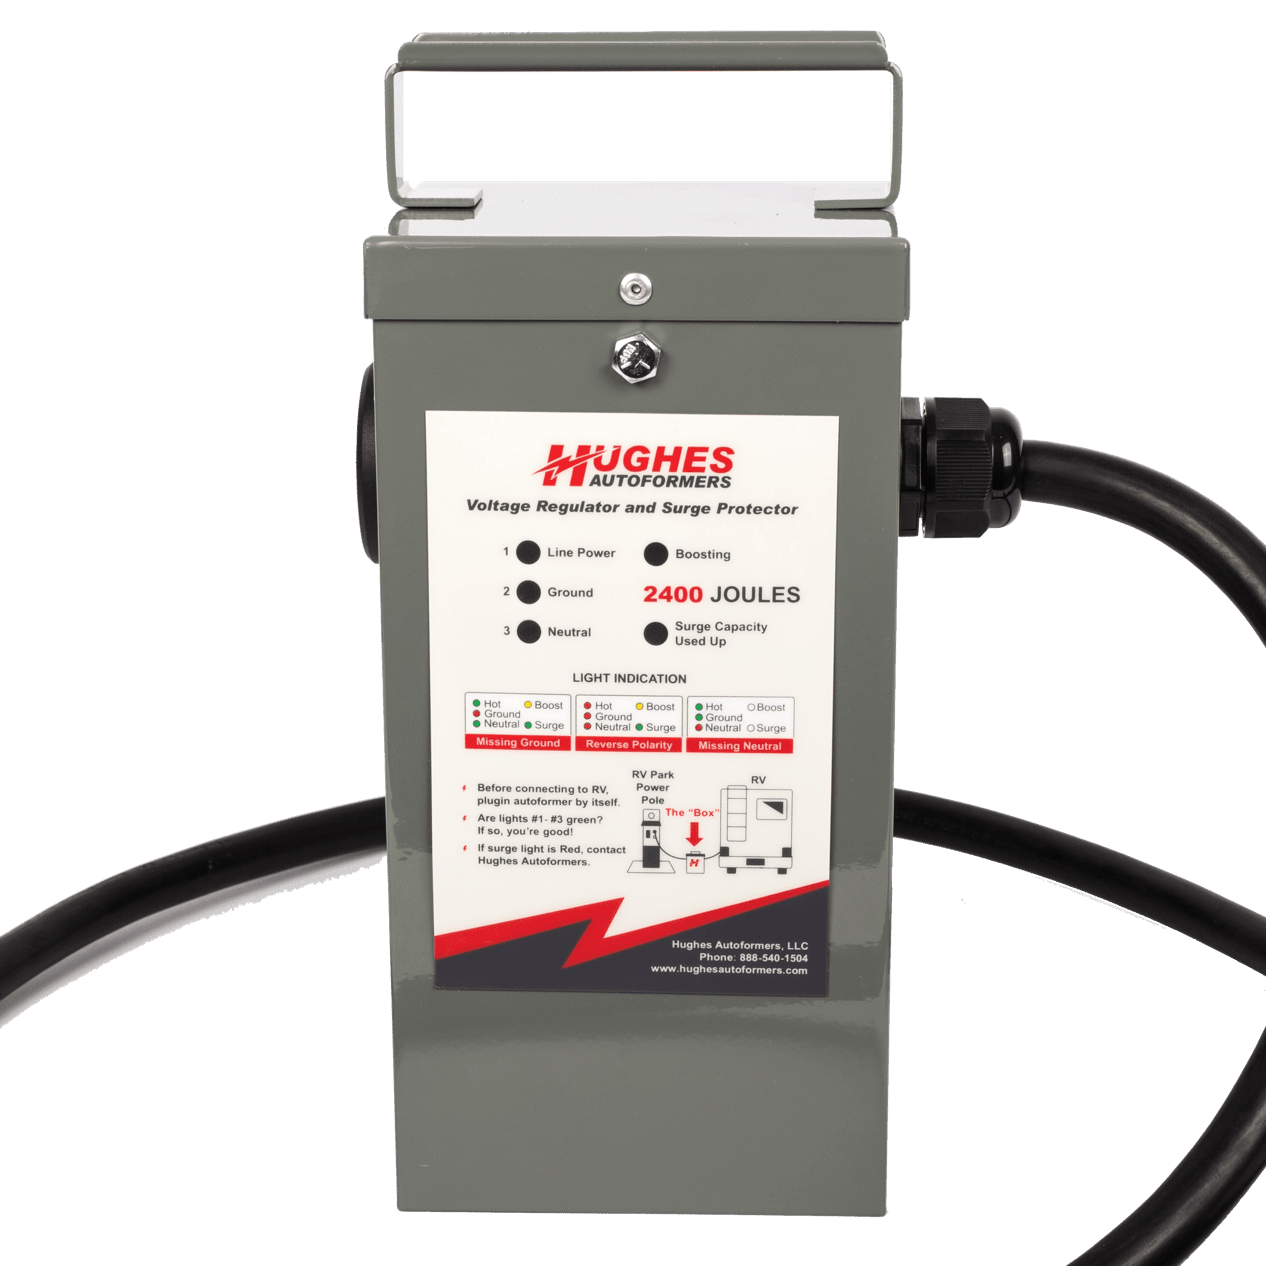 Hughes Autoformers The Original Low Voltage Boosting Solution 50 Amp Service For Rv 30 3600 Watt Booster With Advanced Surge Protection